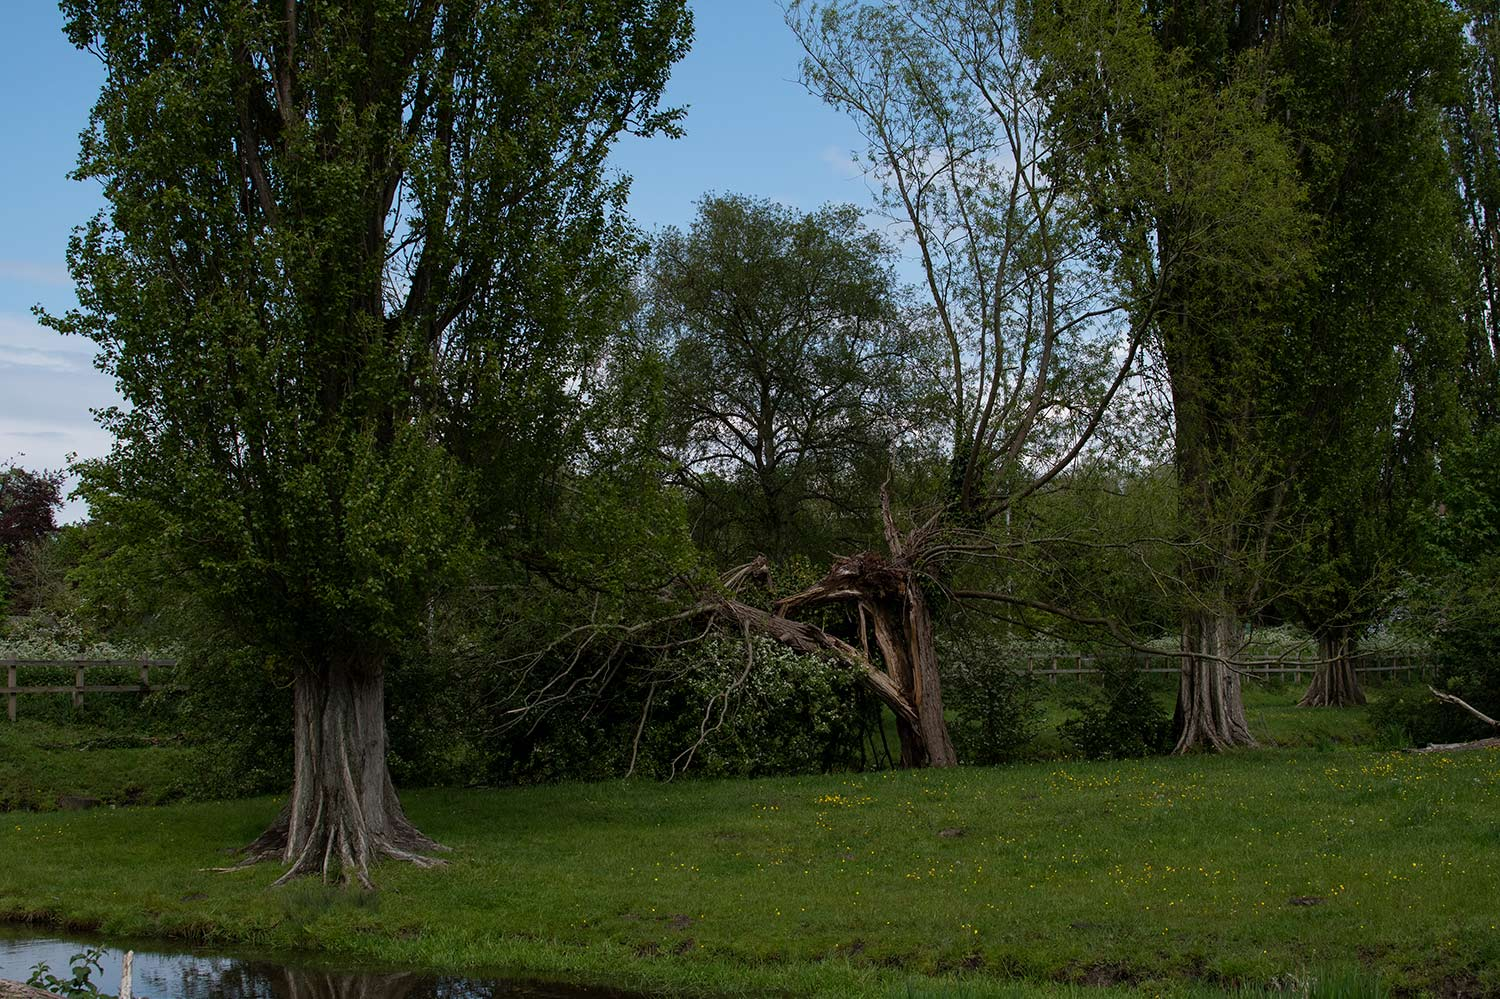 Lombardy Poplars and fallen Willows